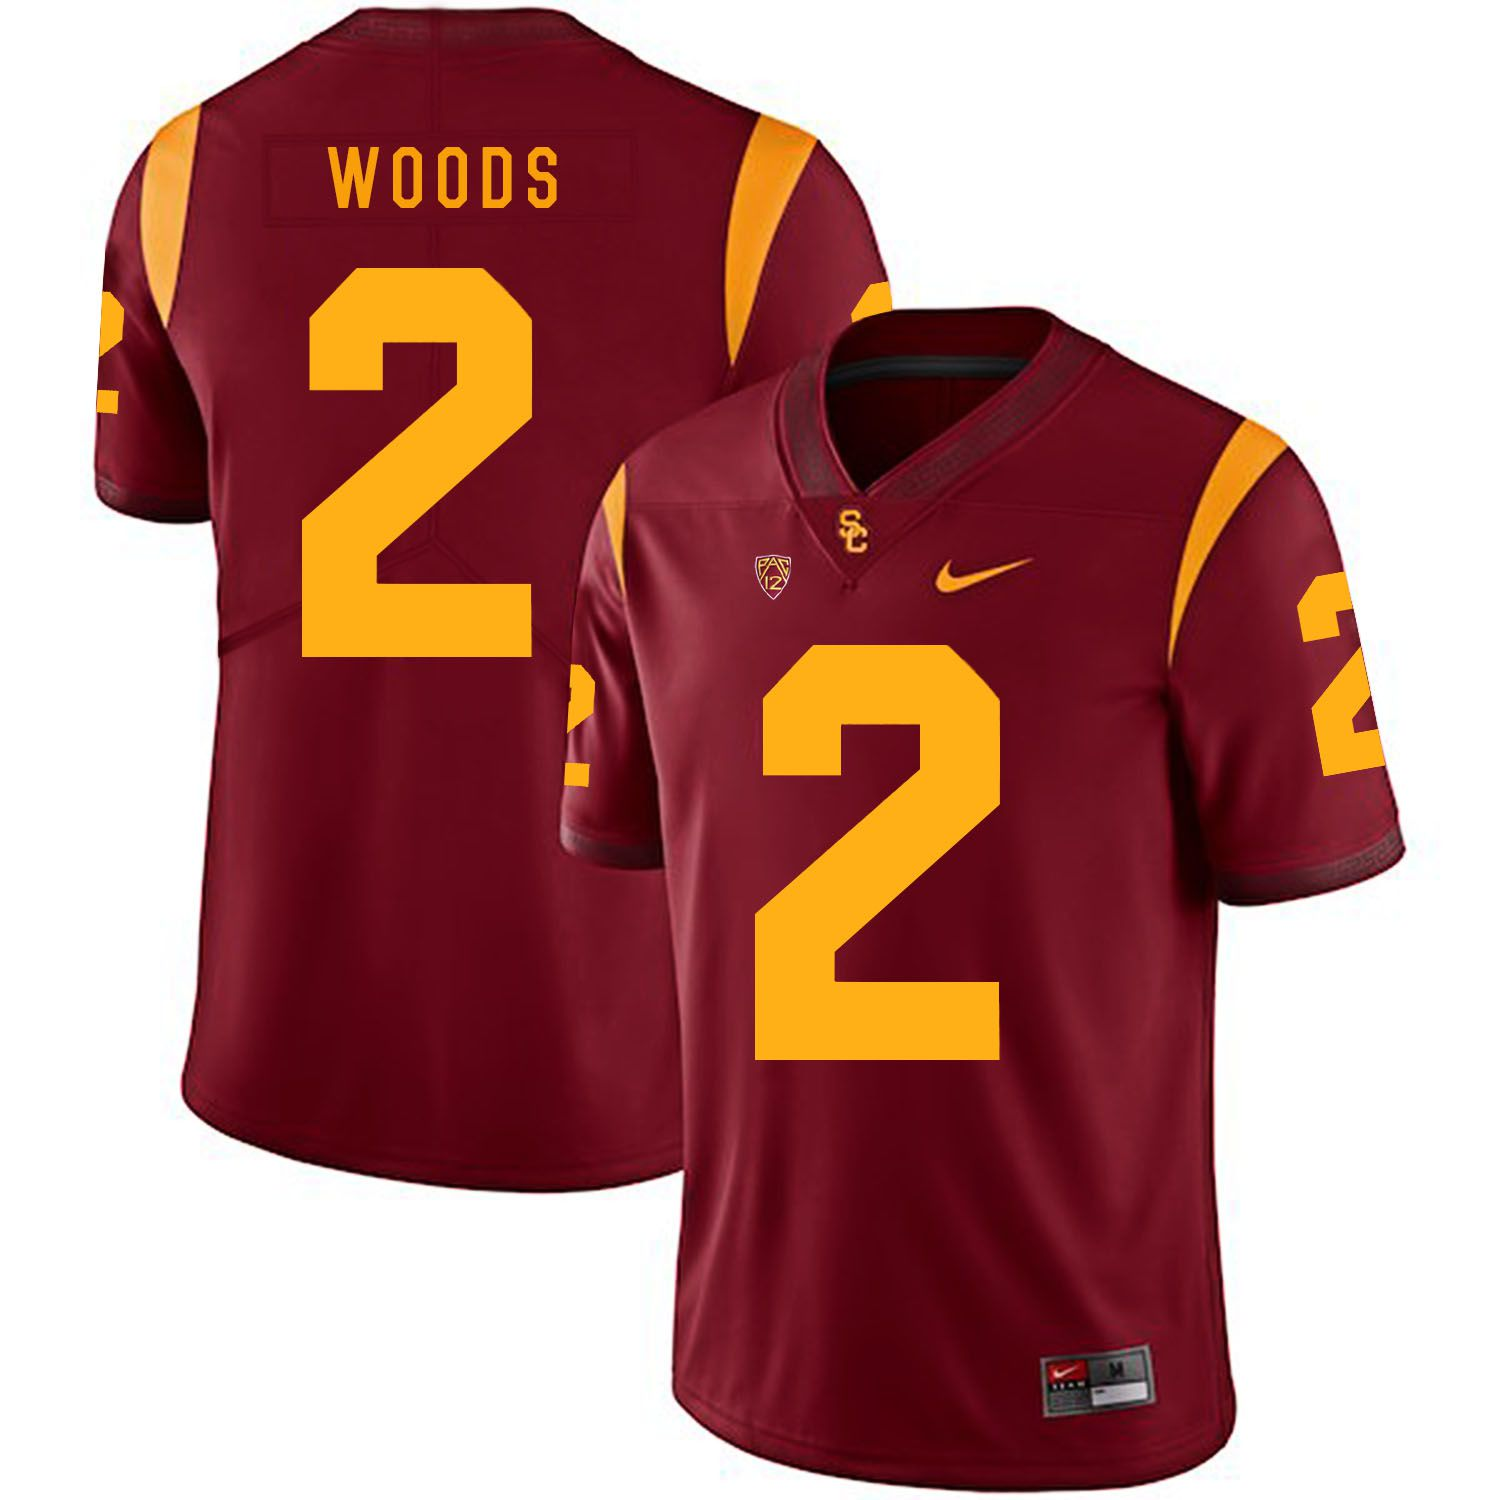 Men USC Trojans 2 Woods Red Customized NCAA Jerseys